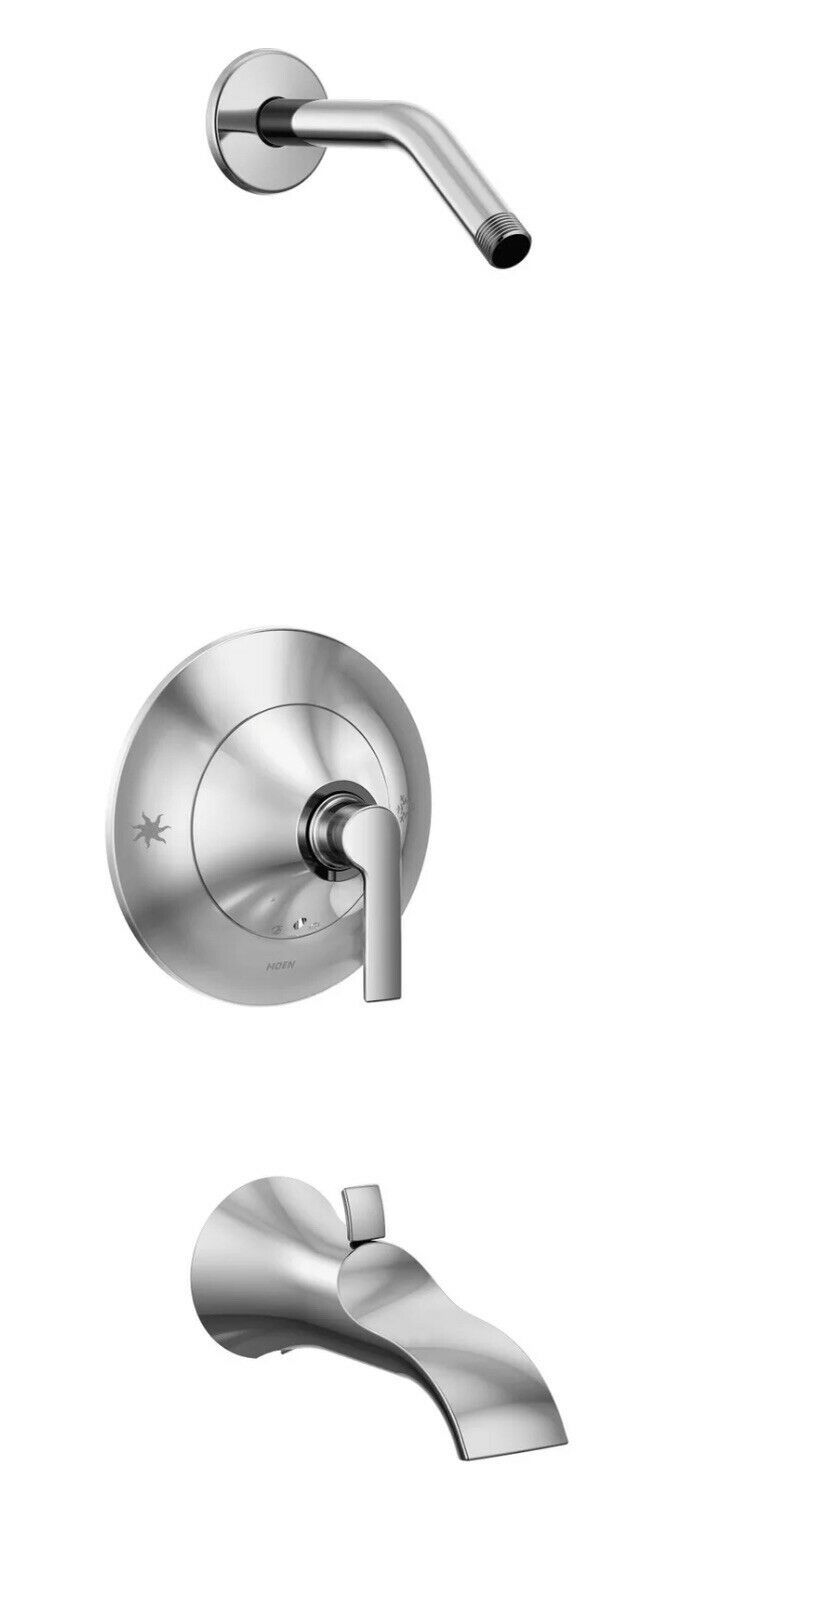 Moen TS3203NH Doux Tub and Shower Trim Package - - Chrome - $84.14